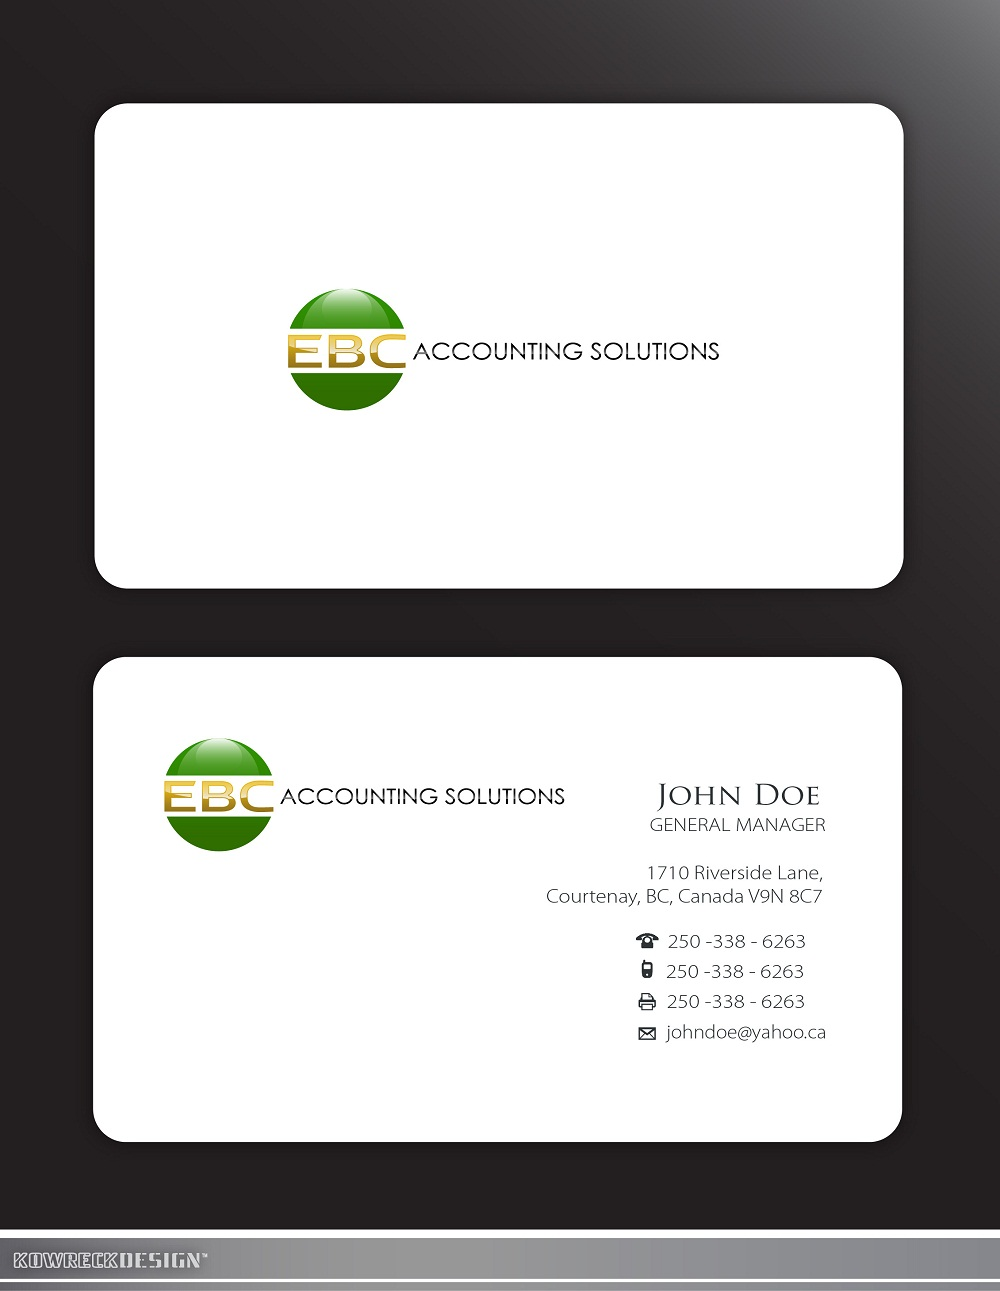 Logo Design by kowreck - Entry No. 202 in the Logo Design Contest New Logo Design for EBC Accounting Solutions.